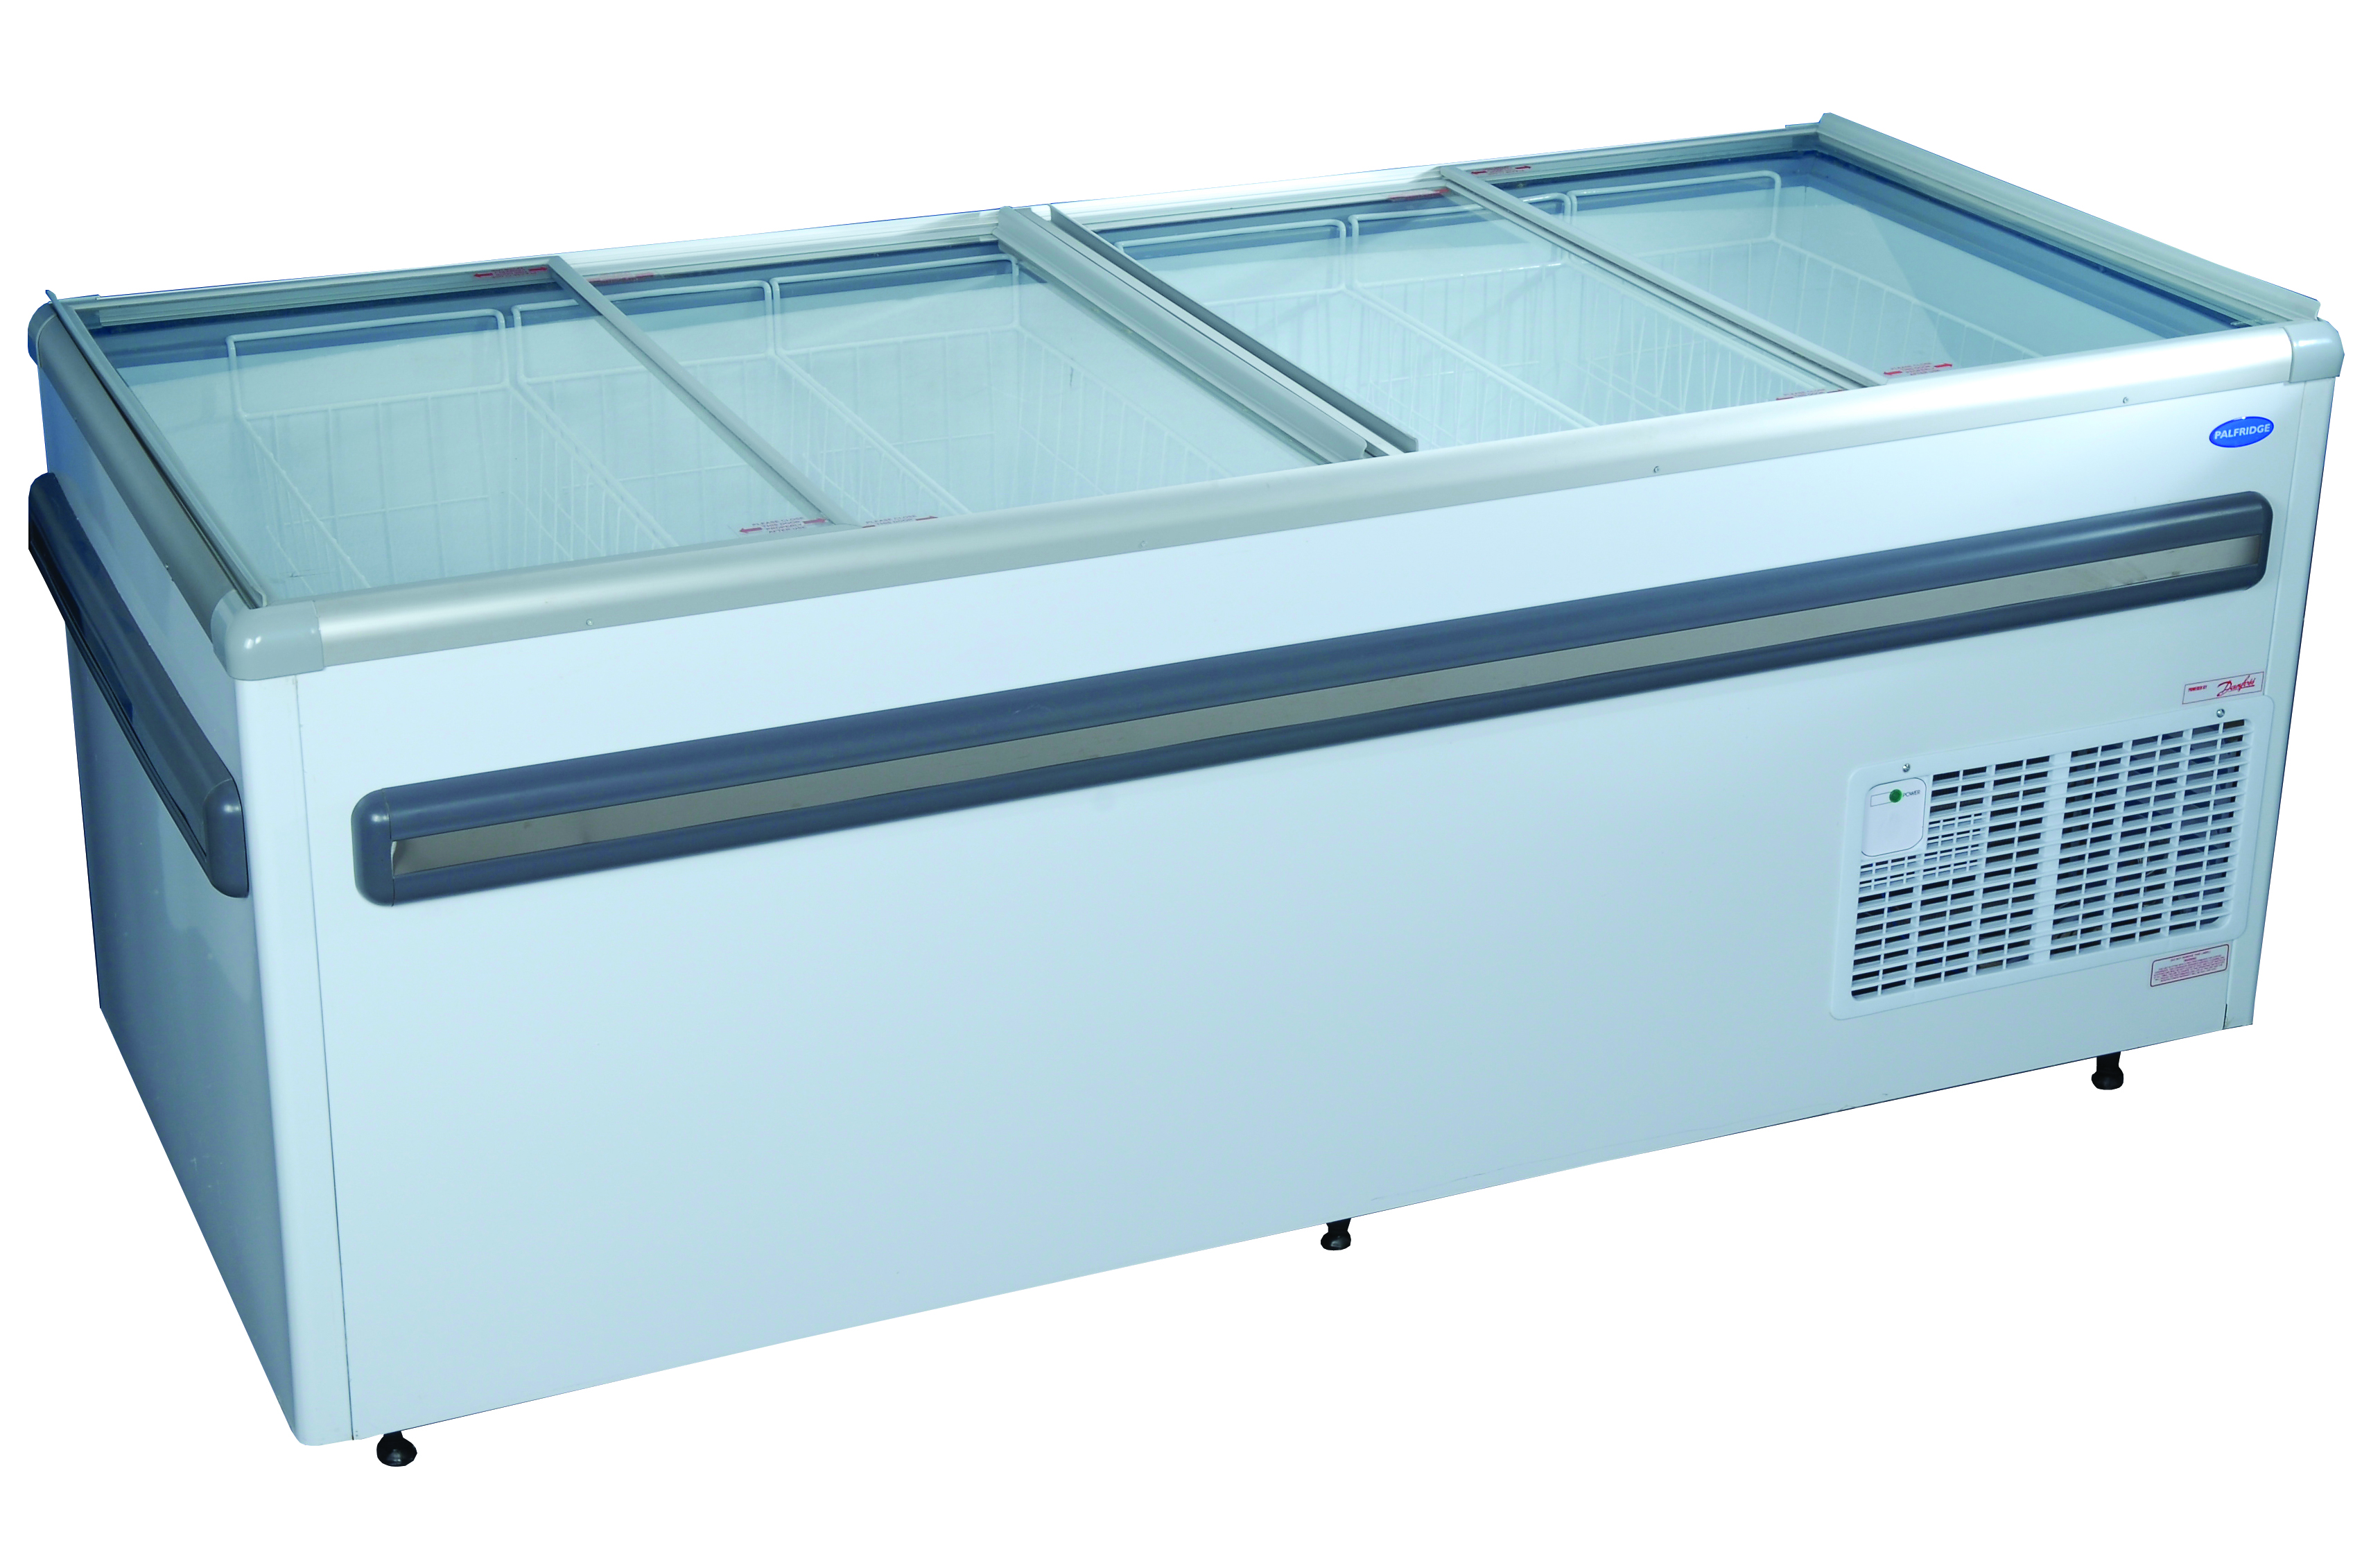 Fridge Star820lt Glass Top Island Freezer Direct Cooling